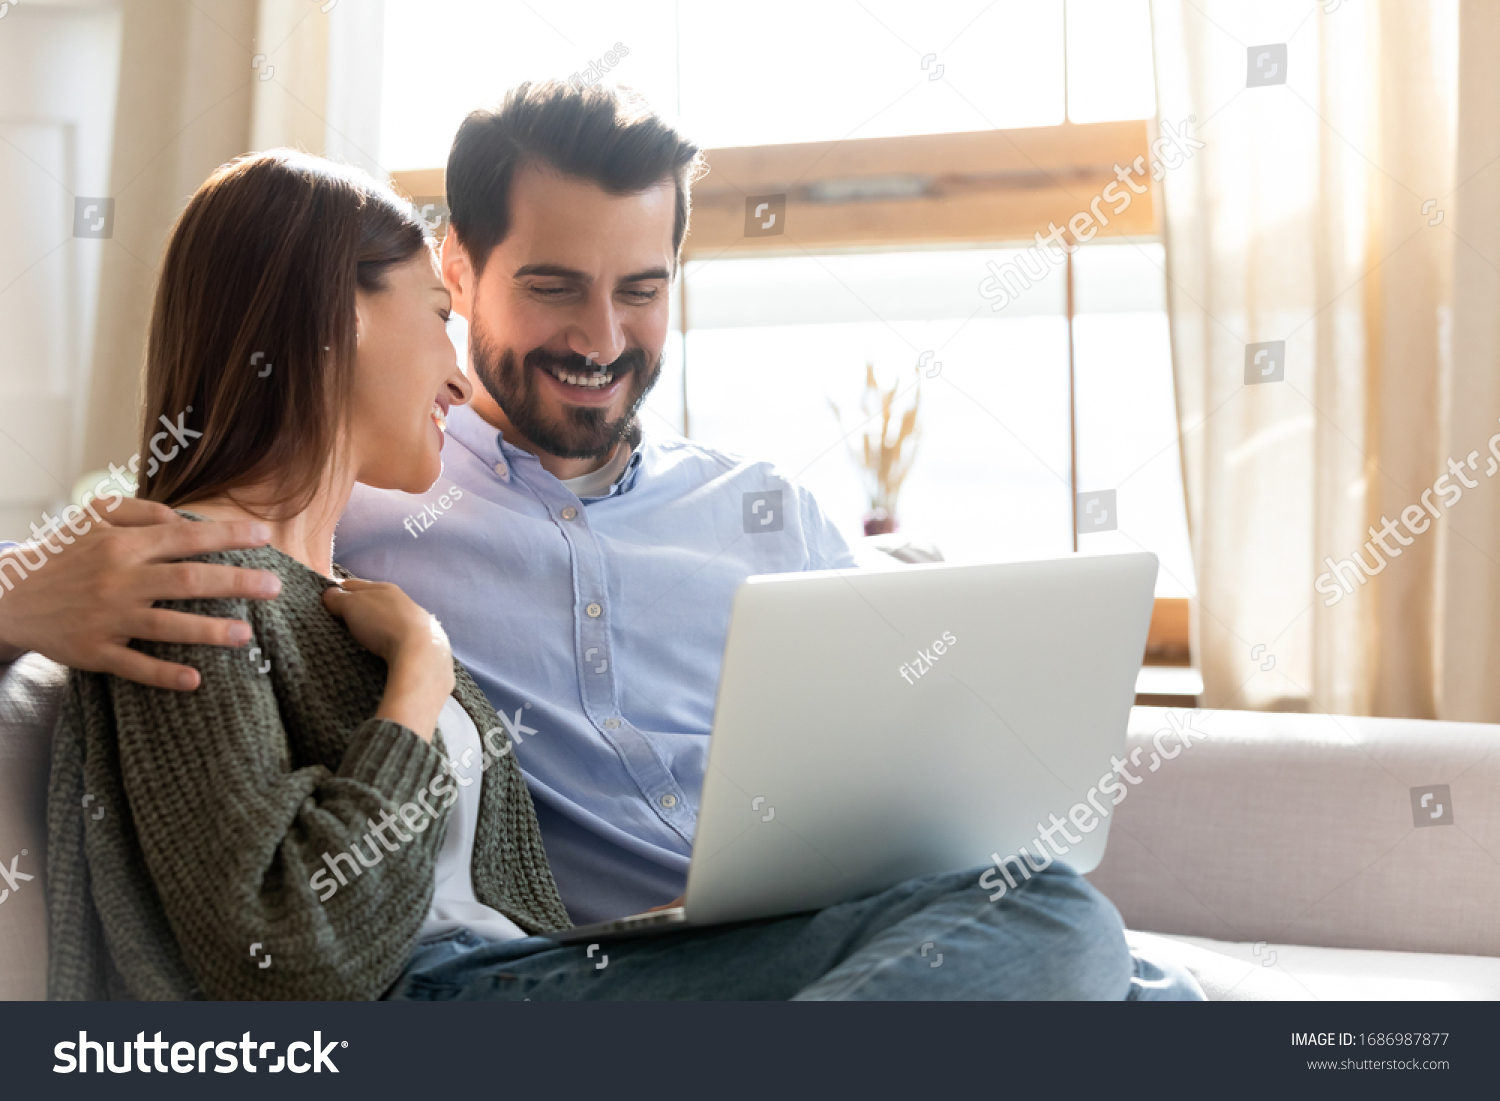 Head shot smiling young woman watching comedian movie or funny videos on computer with loving husband at home. Happy married couple spending free leisure weekend holiday time with laptop indoors. #1686987877